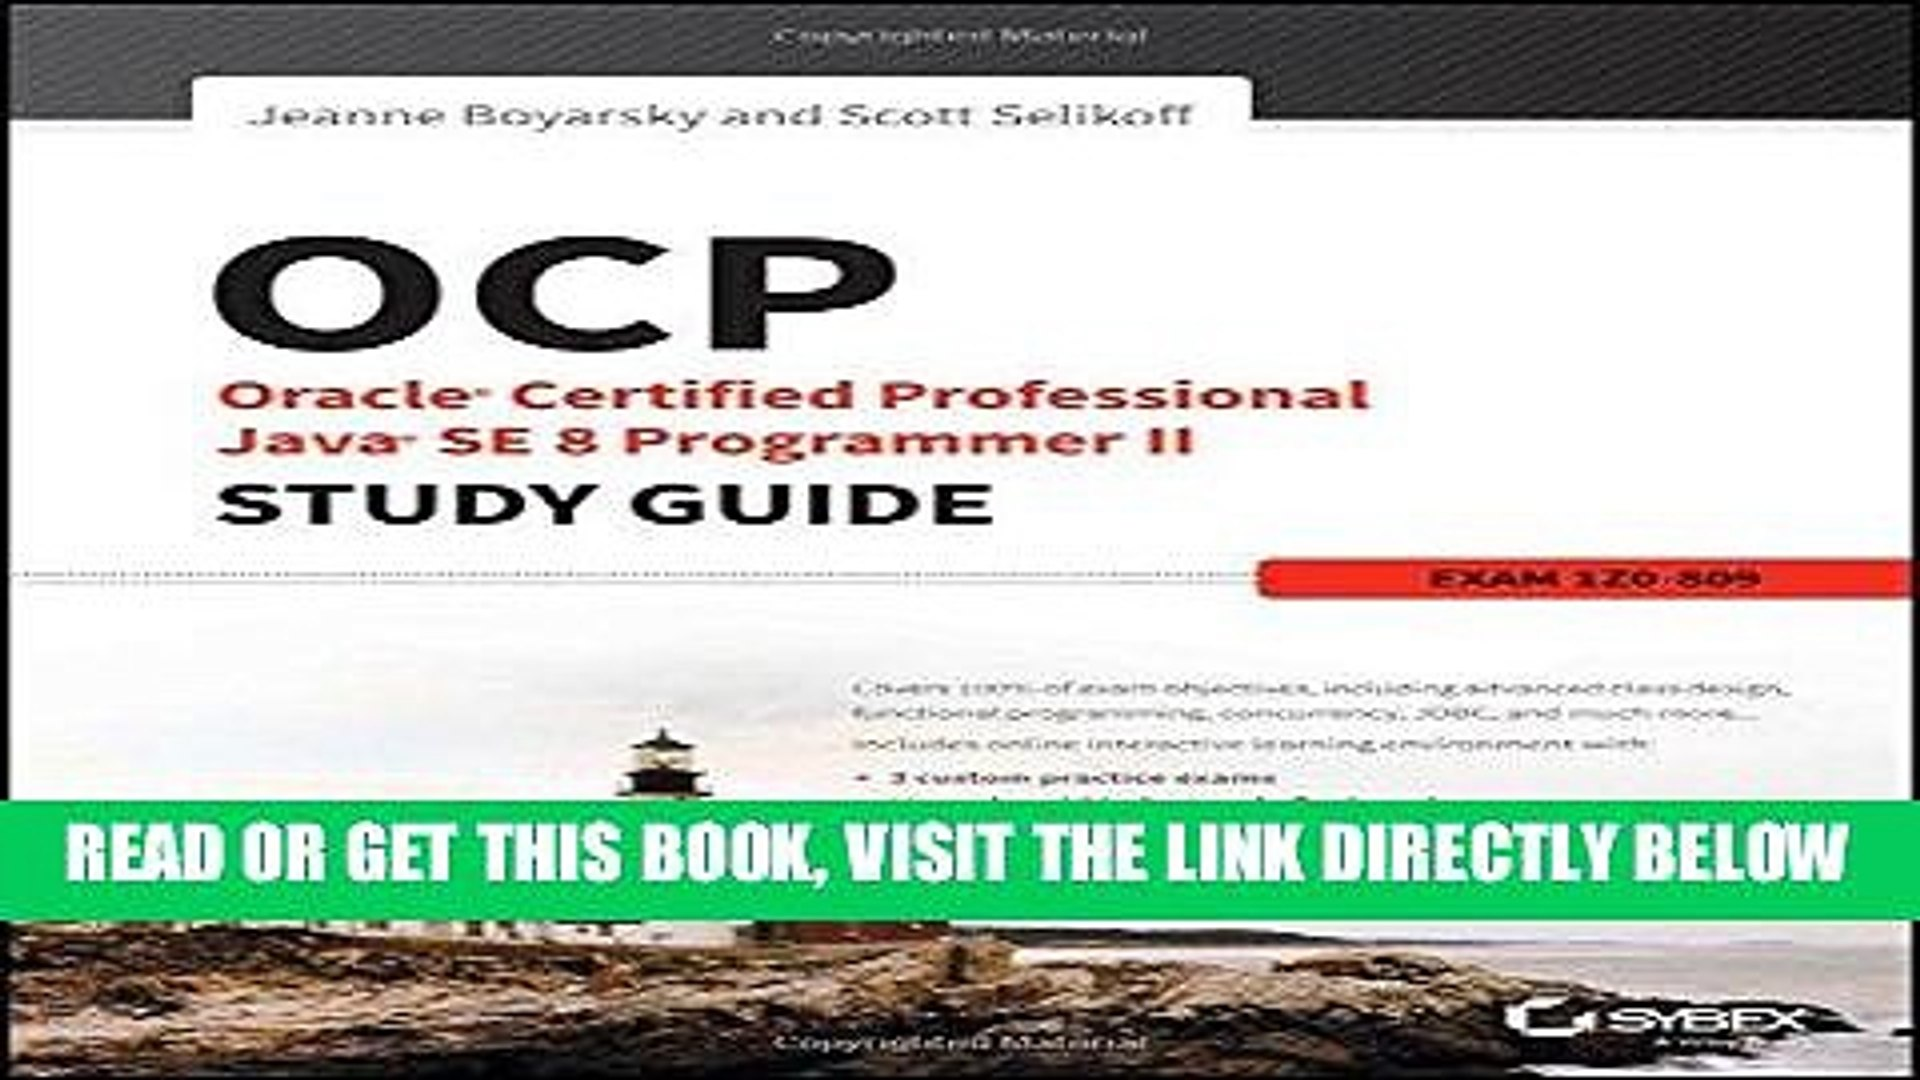 [Free Read] OCP: Oracle Certified Professional Java SE 8 Programmer II  Study Guide: Exam 1Z0-809